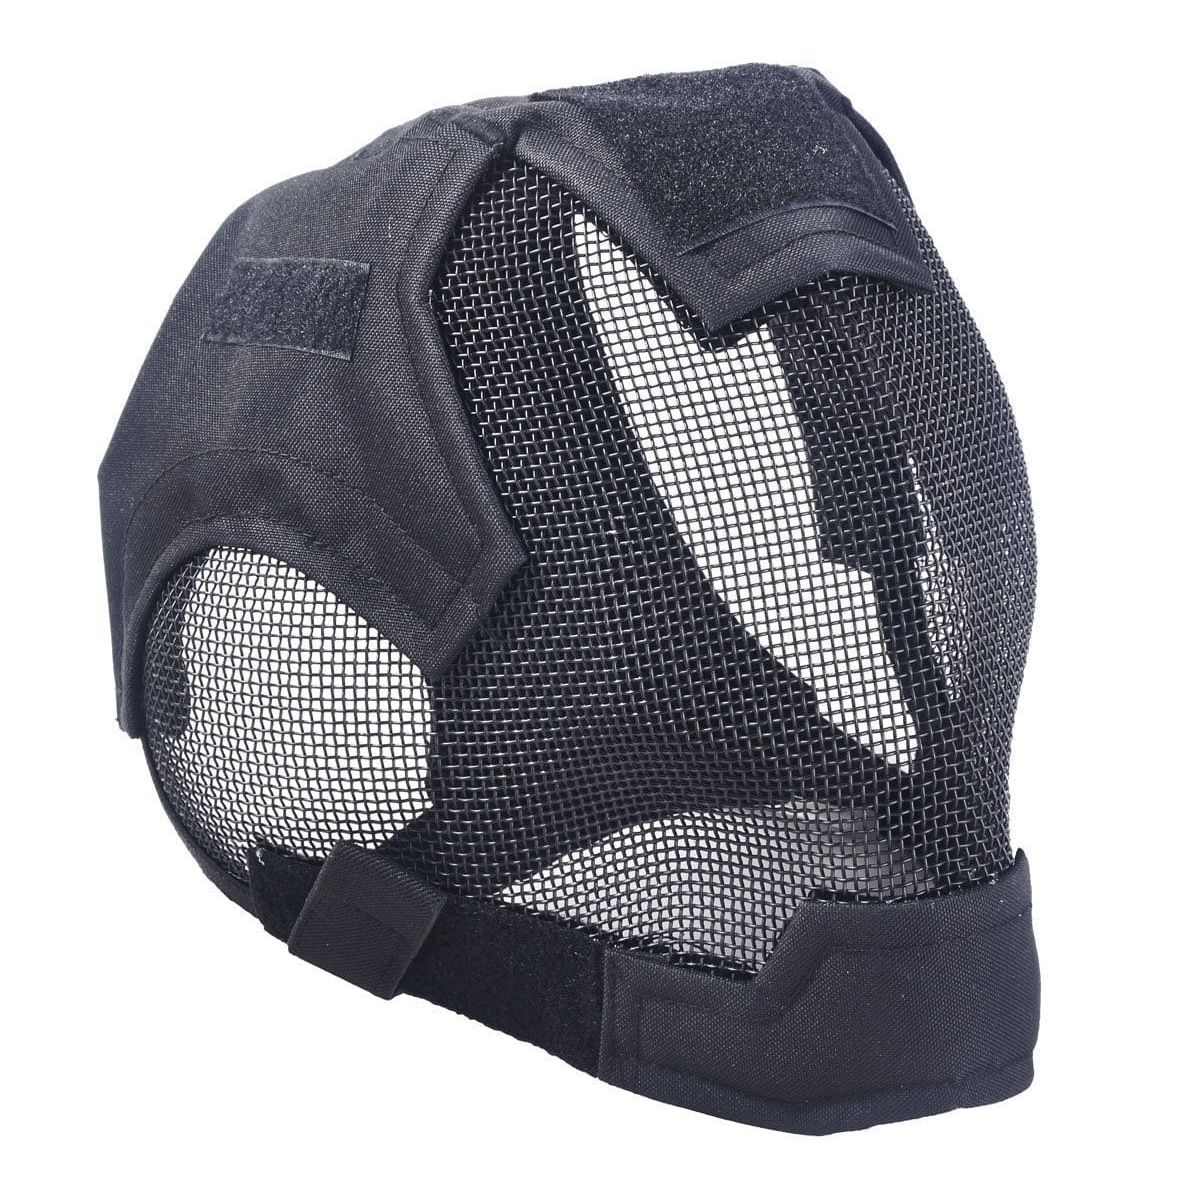 Airsoft Safety Mesh Mask Full Face & Ears Protection Fencing safety